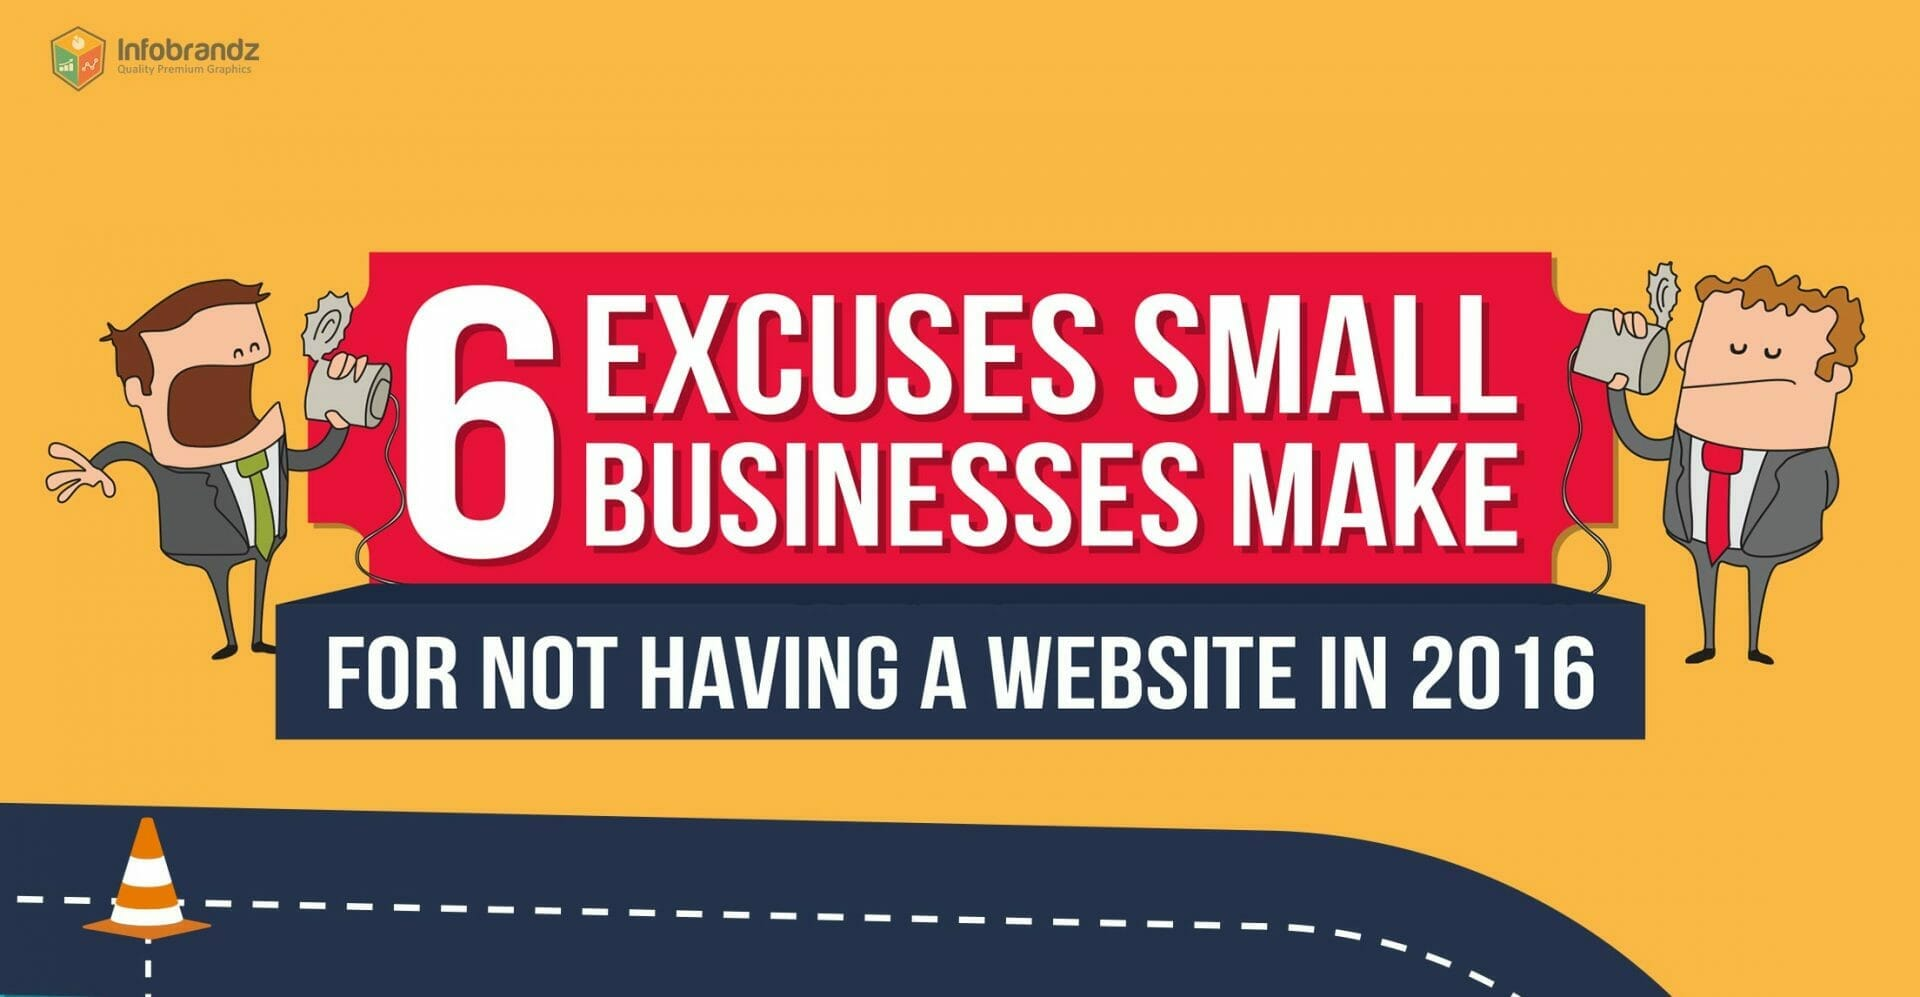 6 Excuses Small Businesses Make For Not Having a Website